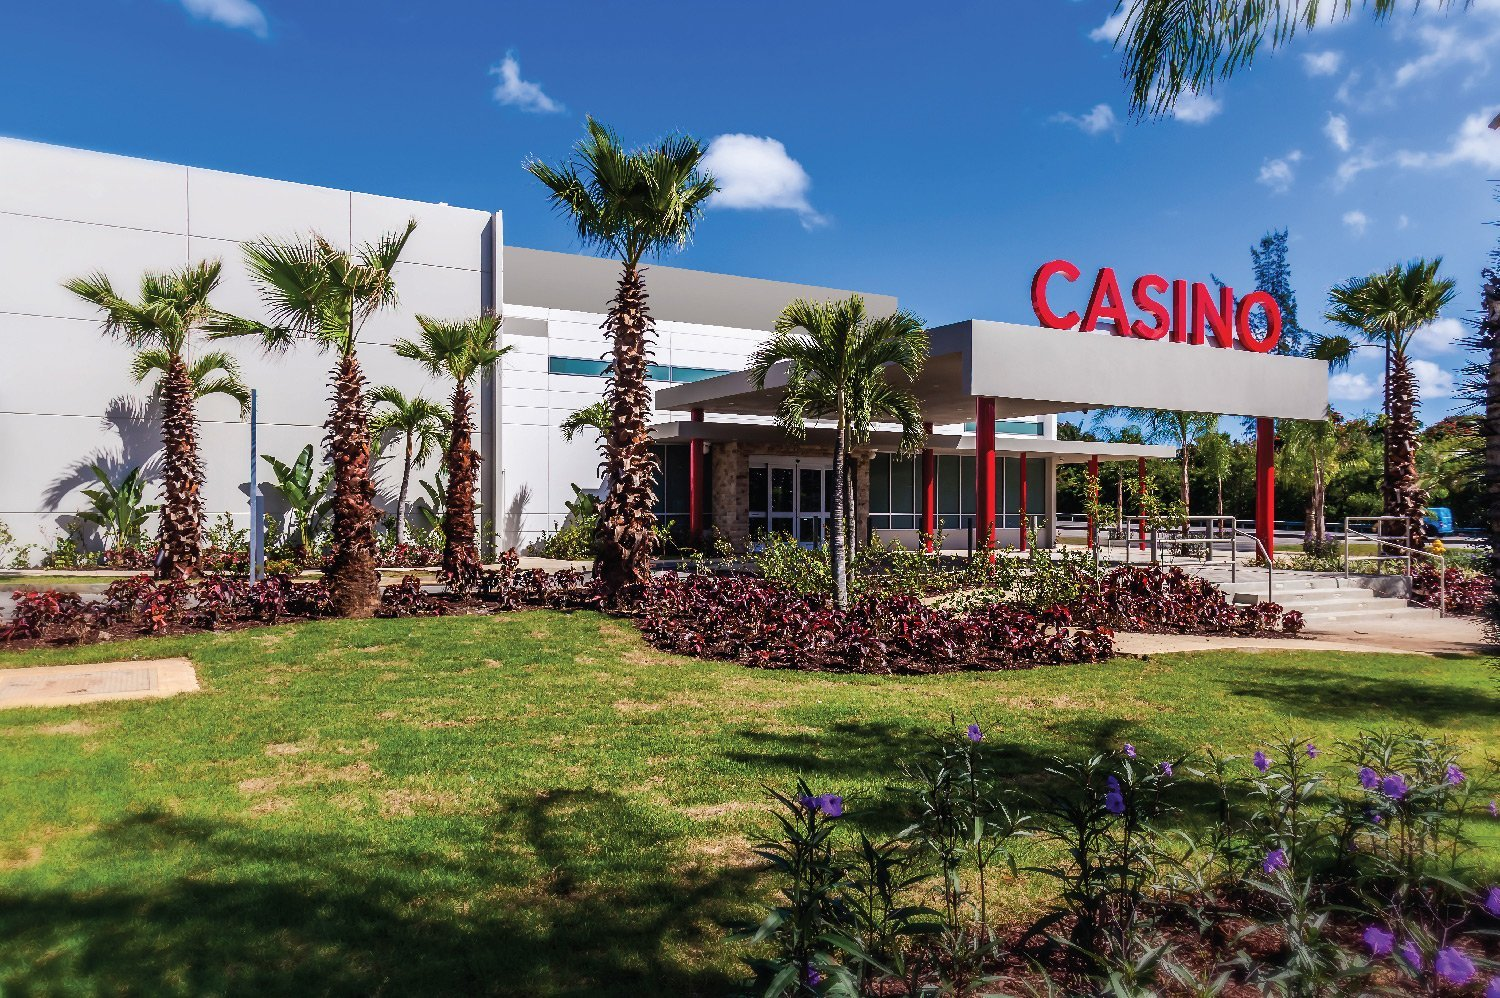 Casino atlantico gambling fund community